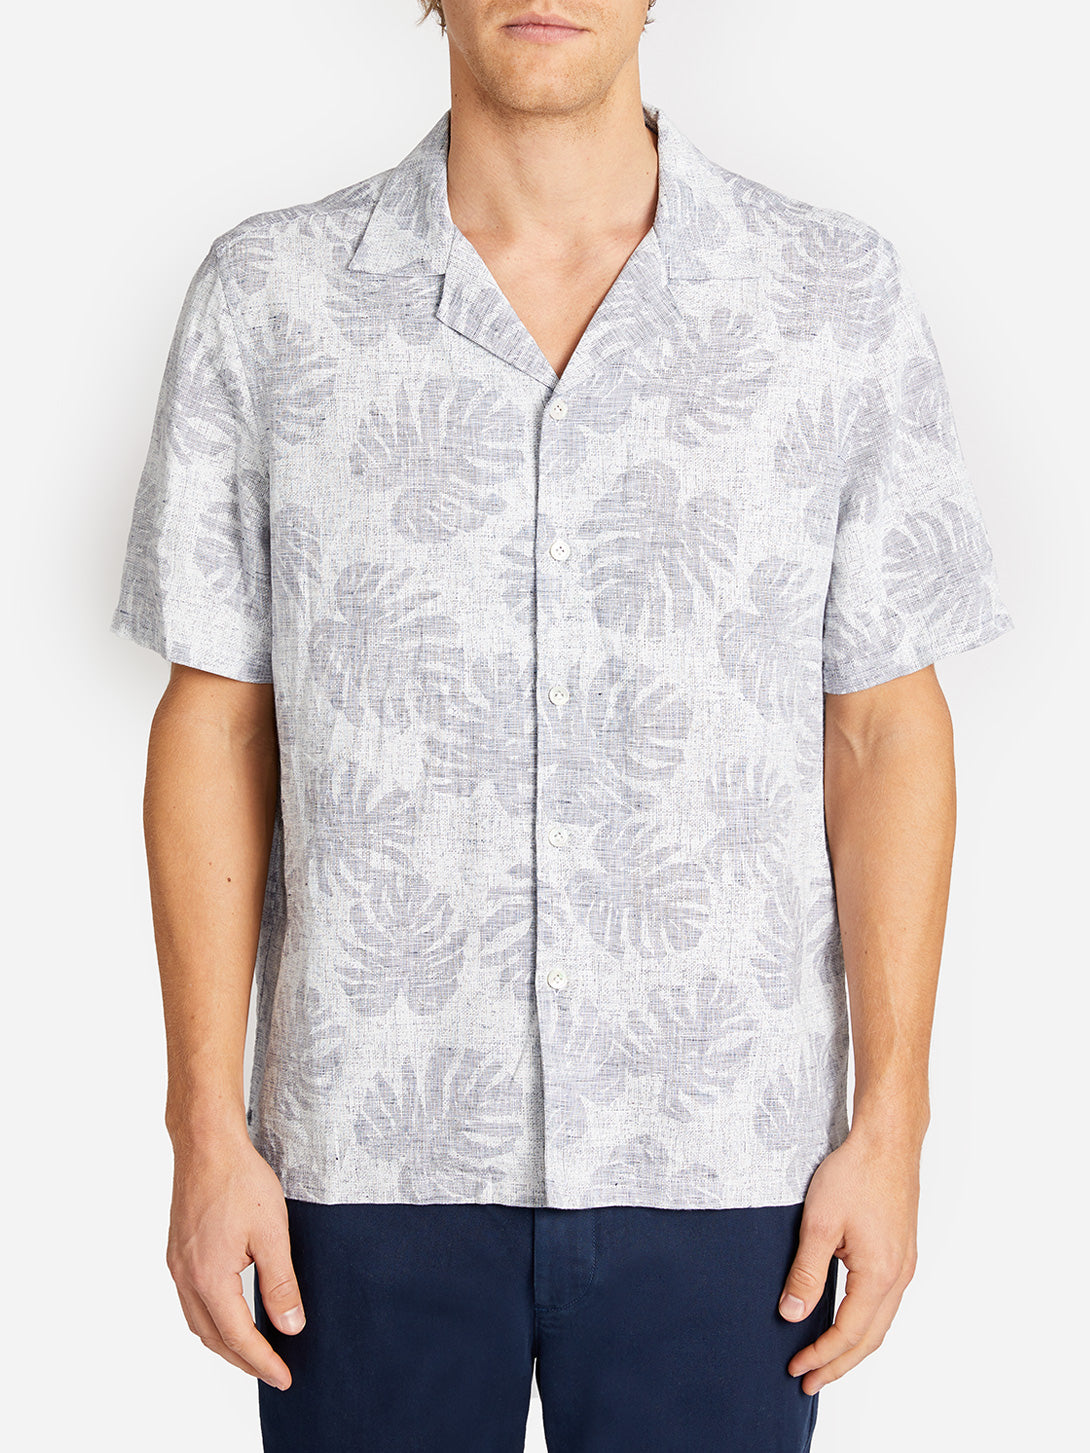 ROCKAWAY PRINT SHIRT LT. NAVY ONS CLOTHING